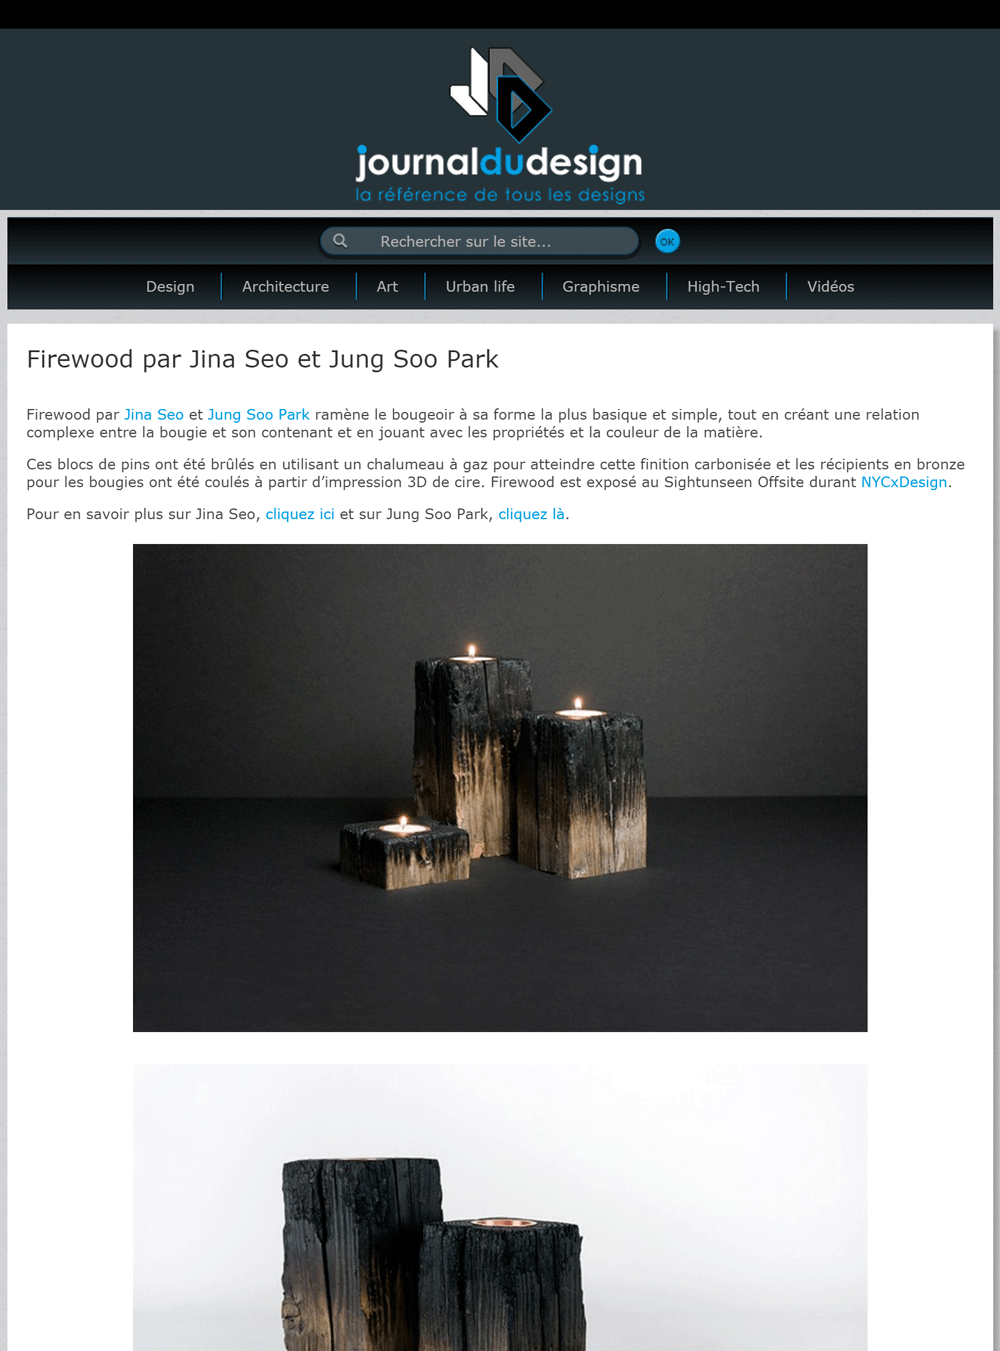 screencapture-www-journal-du-design-fr-design-firewood-par-jina-seo-et-jung-soo-park-59792-1431961471396.png